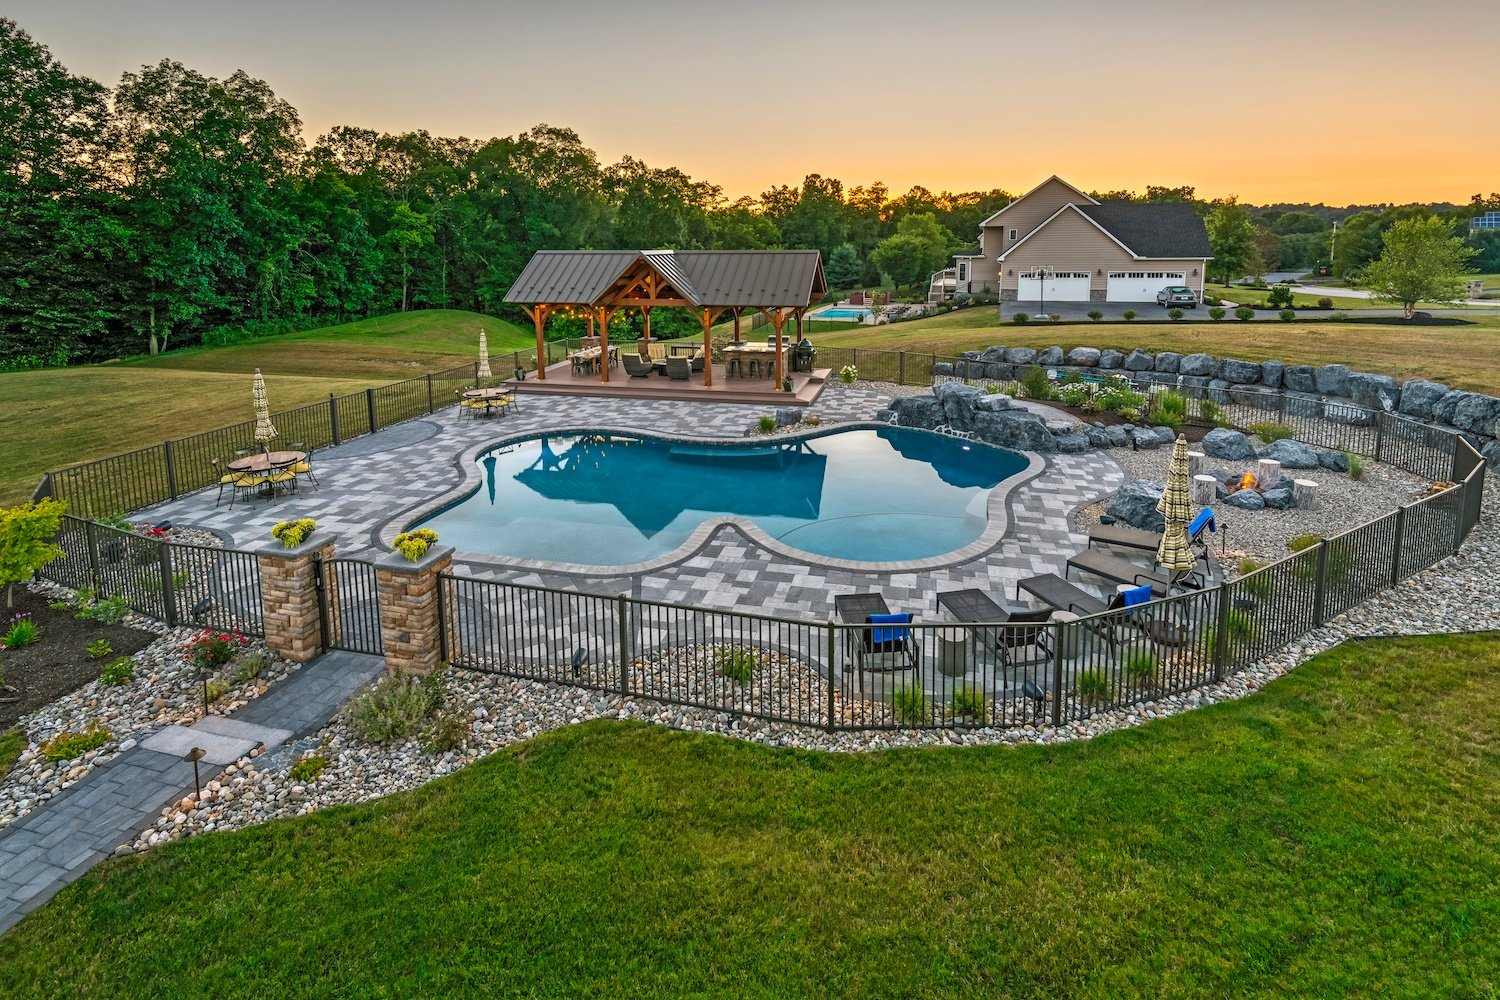 Harrisburg, PA Pool & Landscape Design Case Study: Creating a Family-Friendly Backyard